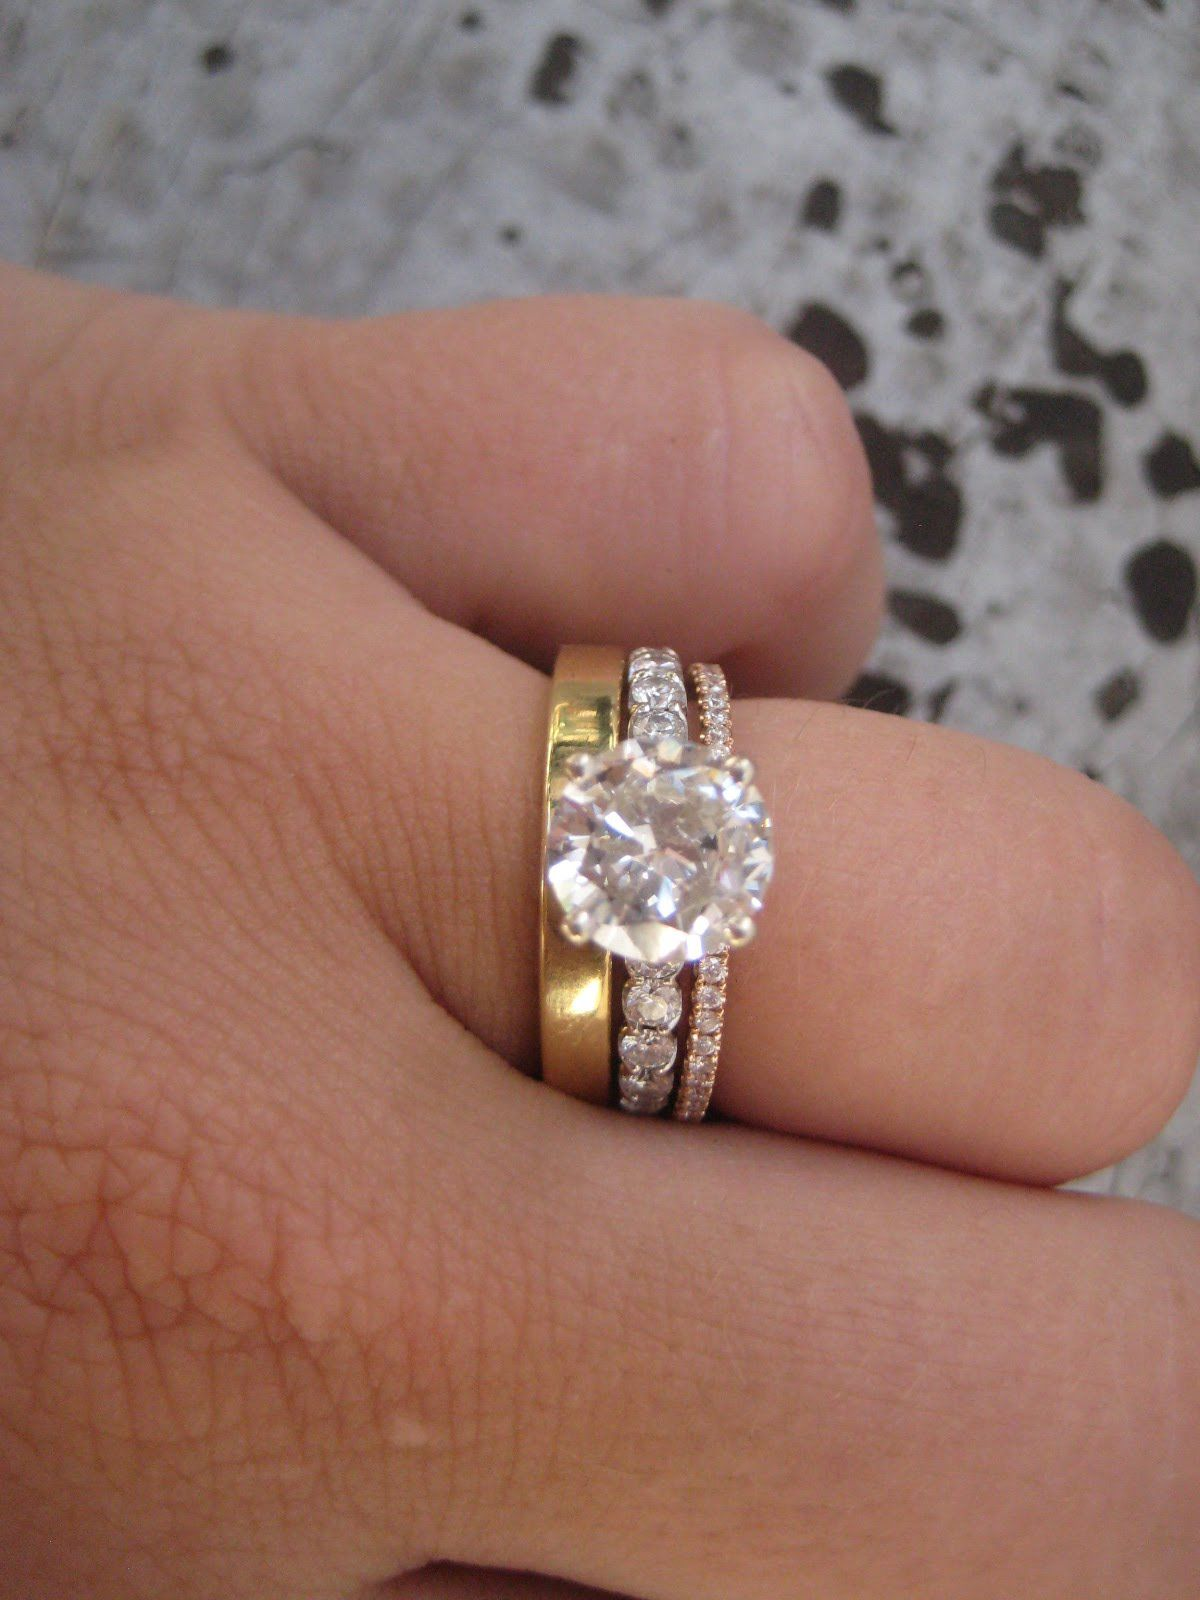 two clarity her for tone wedding yellow com trio color women gold men dp i jewelry his bands rings white band j amazon set